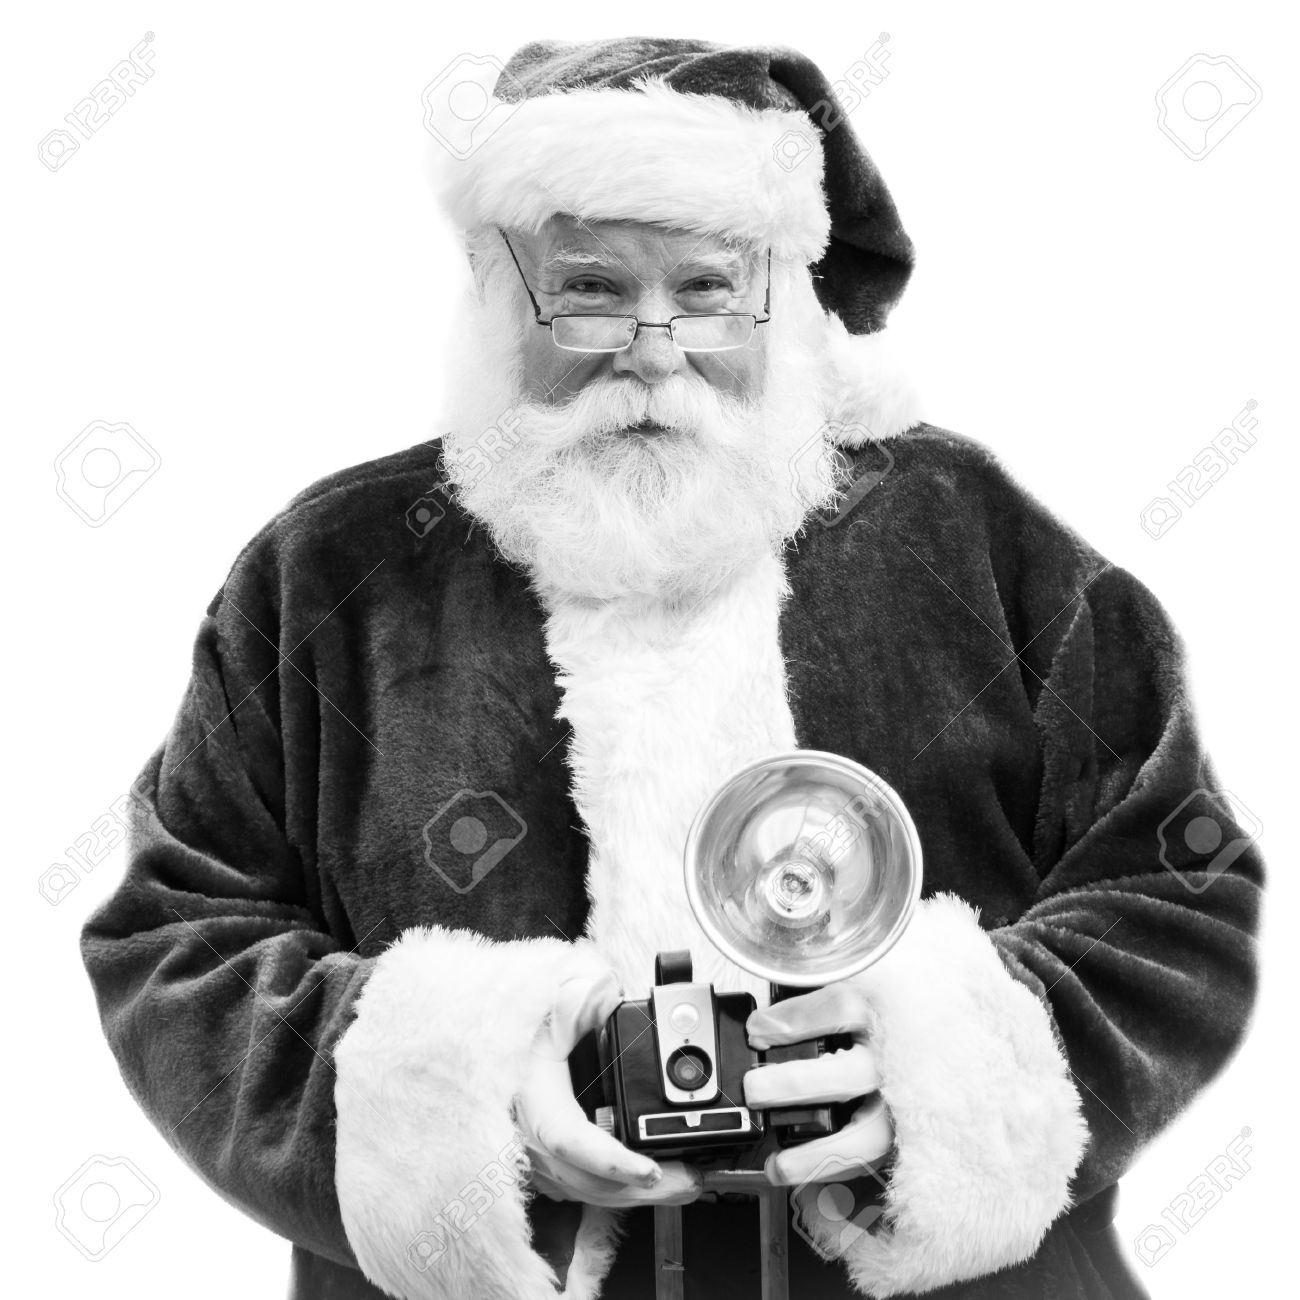 An authentic Santa Claus holds an old Vintage camera in black and white - 22081677